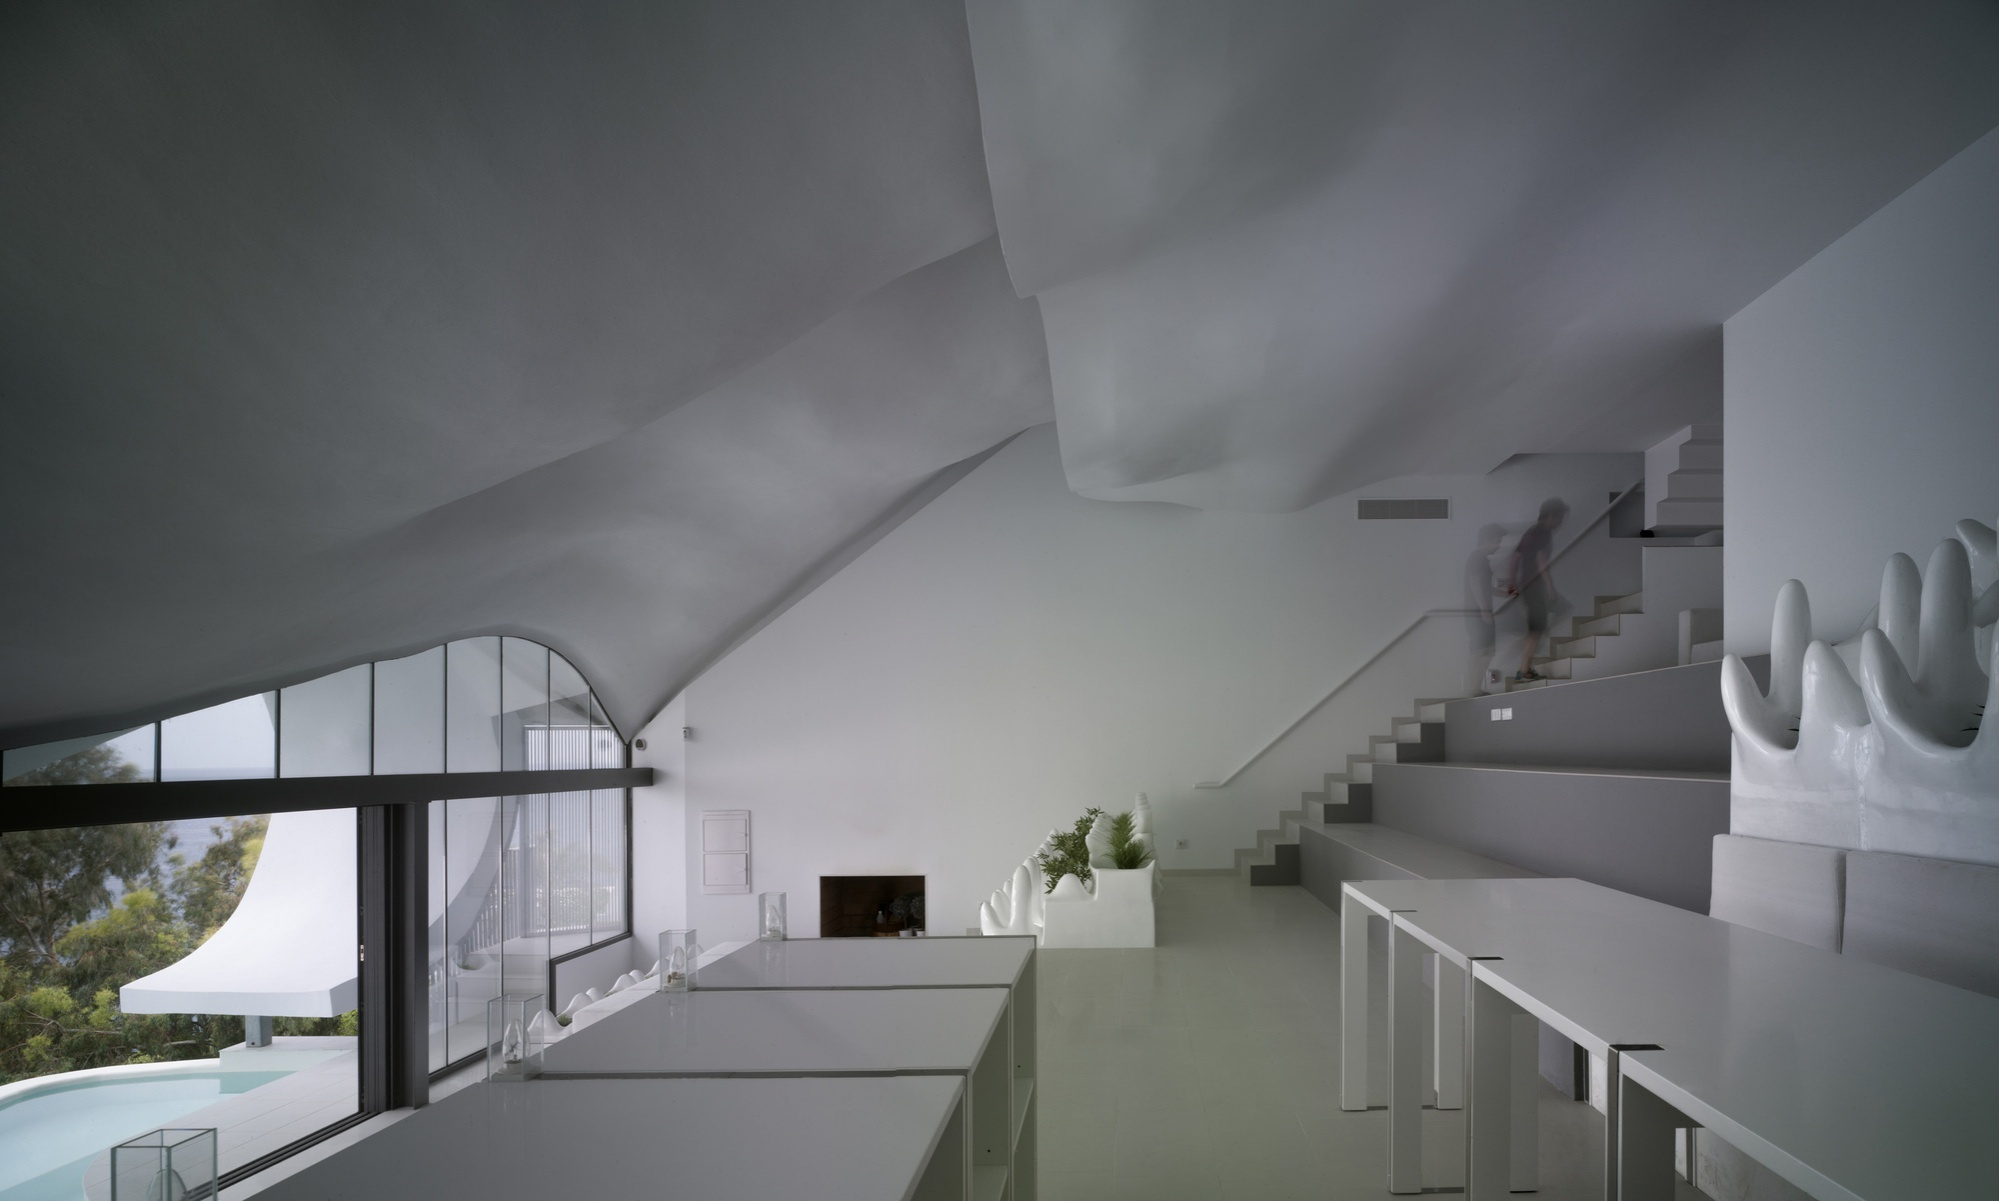 the-house-on-cliff-gilbartolome-architects-archdaily-jesus-granada_architecture-soil-house_architecture_home-designer-architectural-salary-architecture-residential-dra